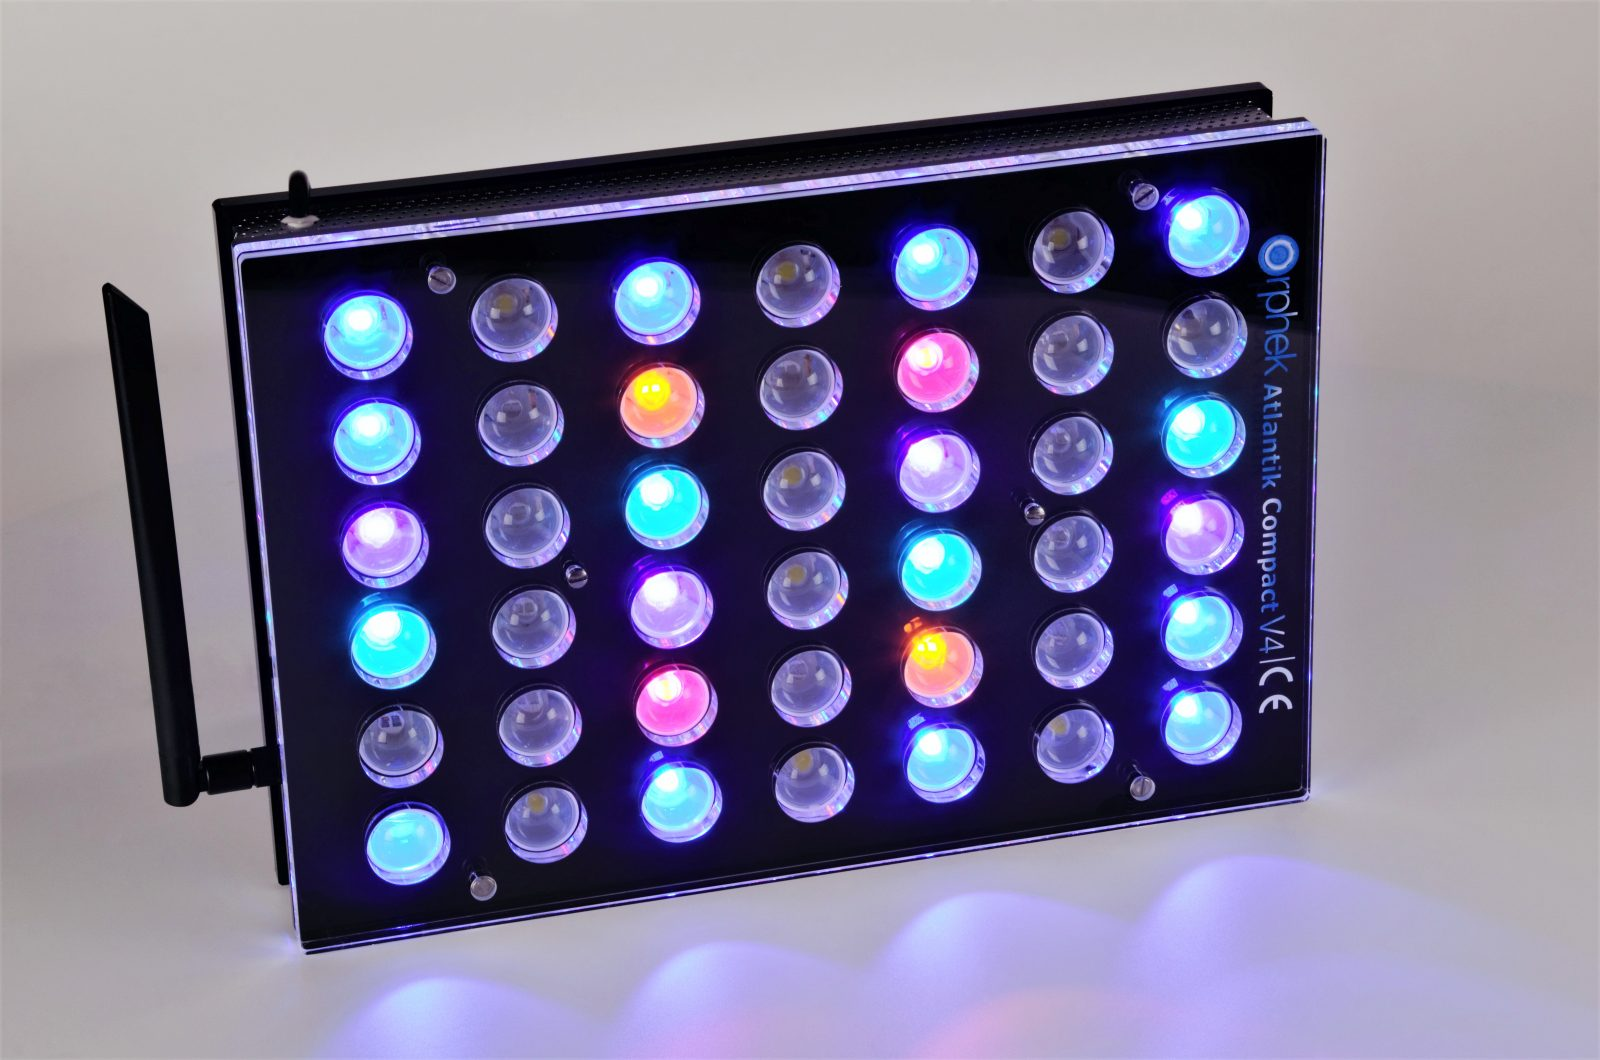 Orphek-Aquarium-LED-Lighting-Atlantik-کمپیکٹ - V4-روشنی -لینلین 2 + 4